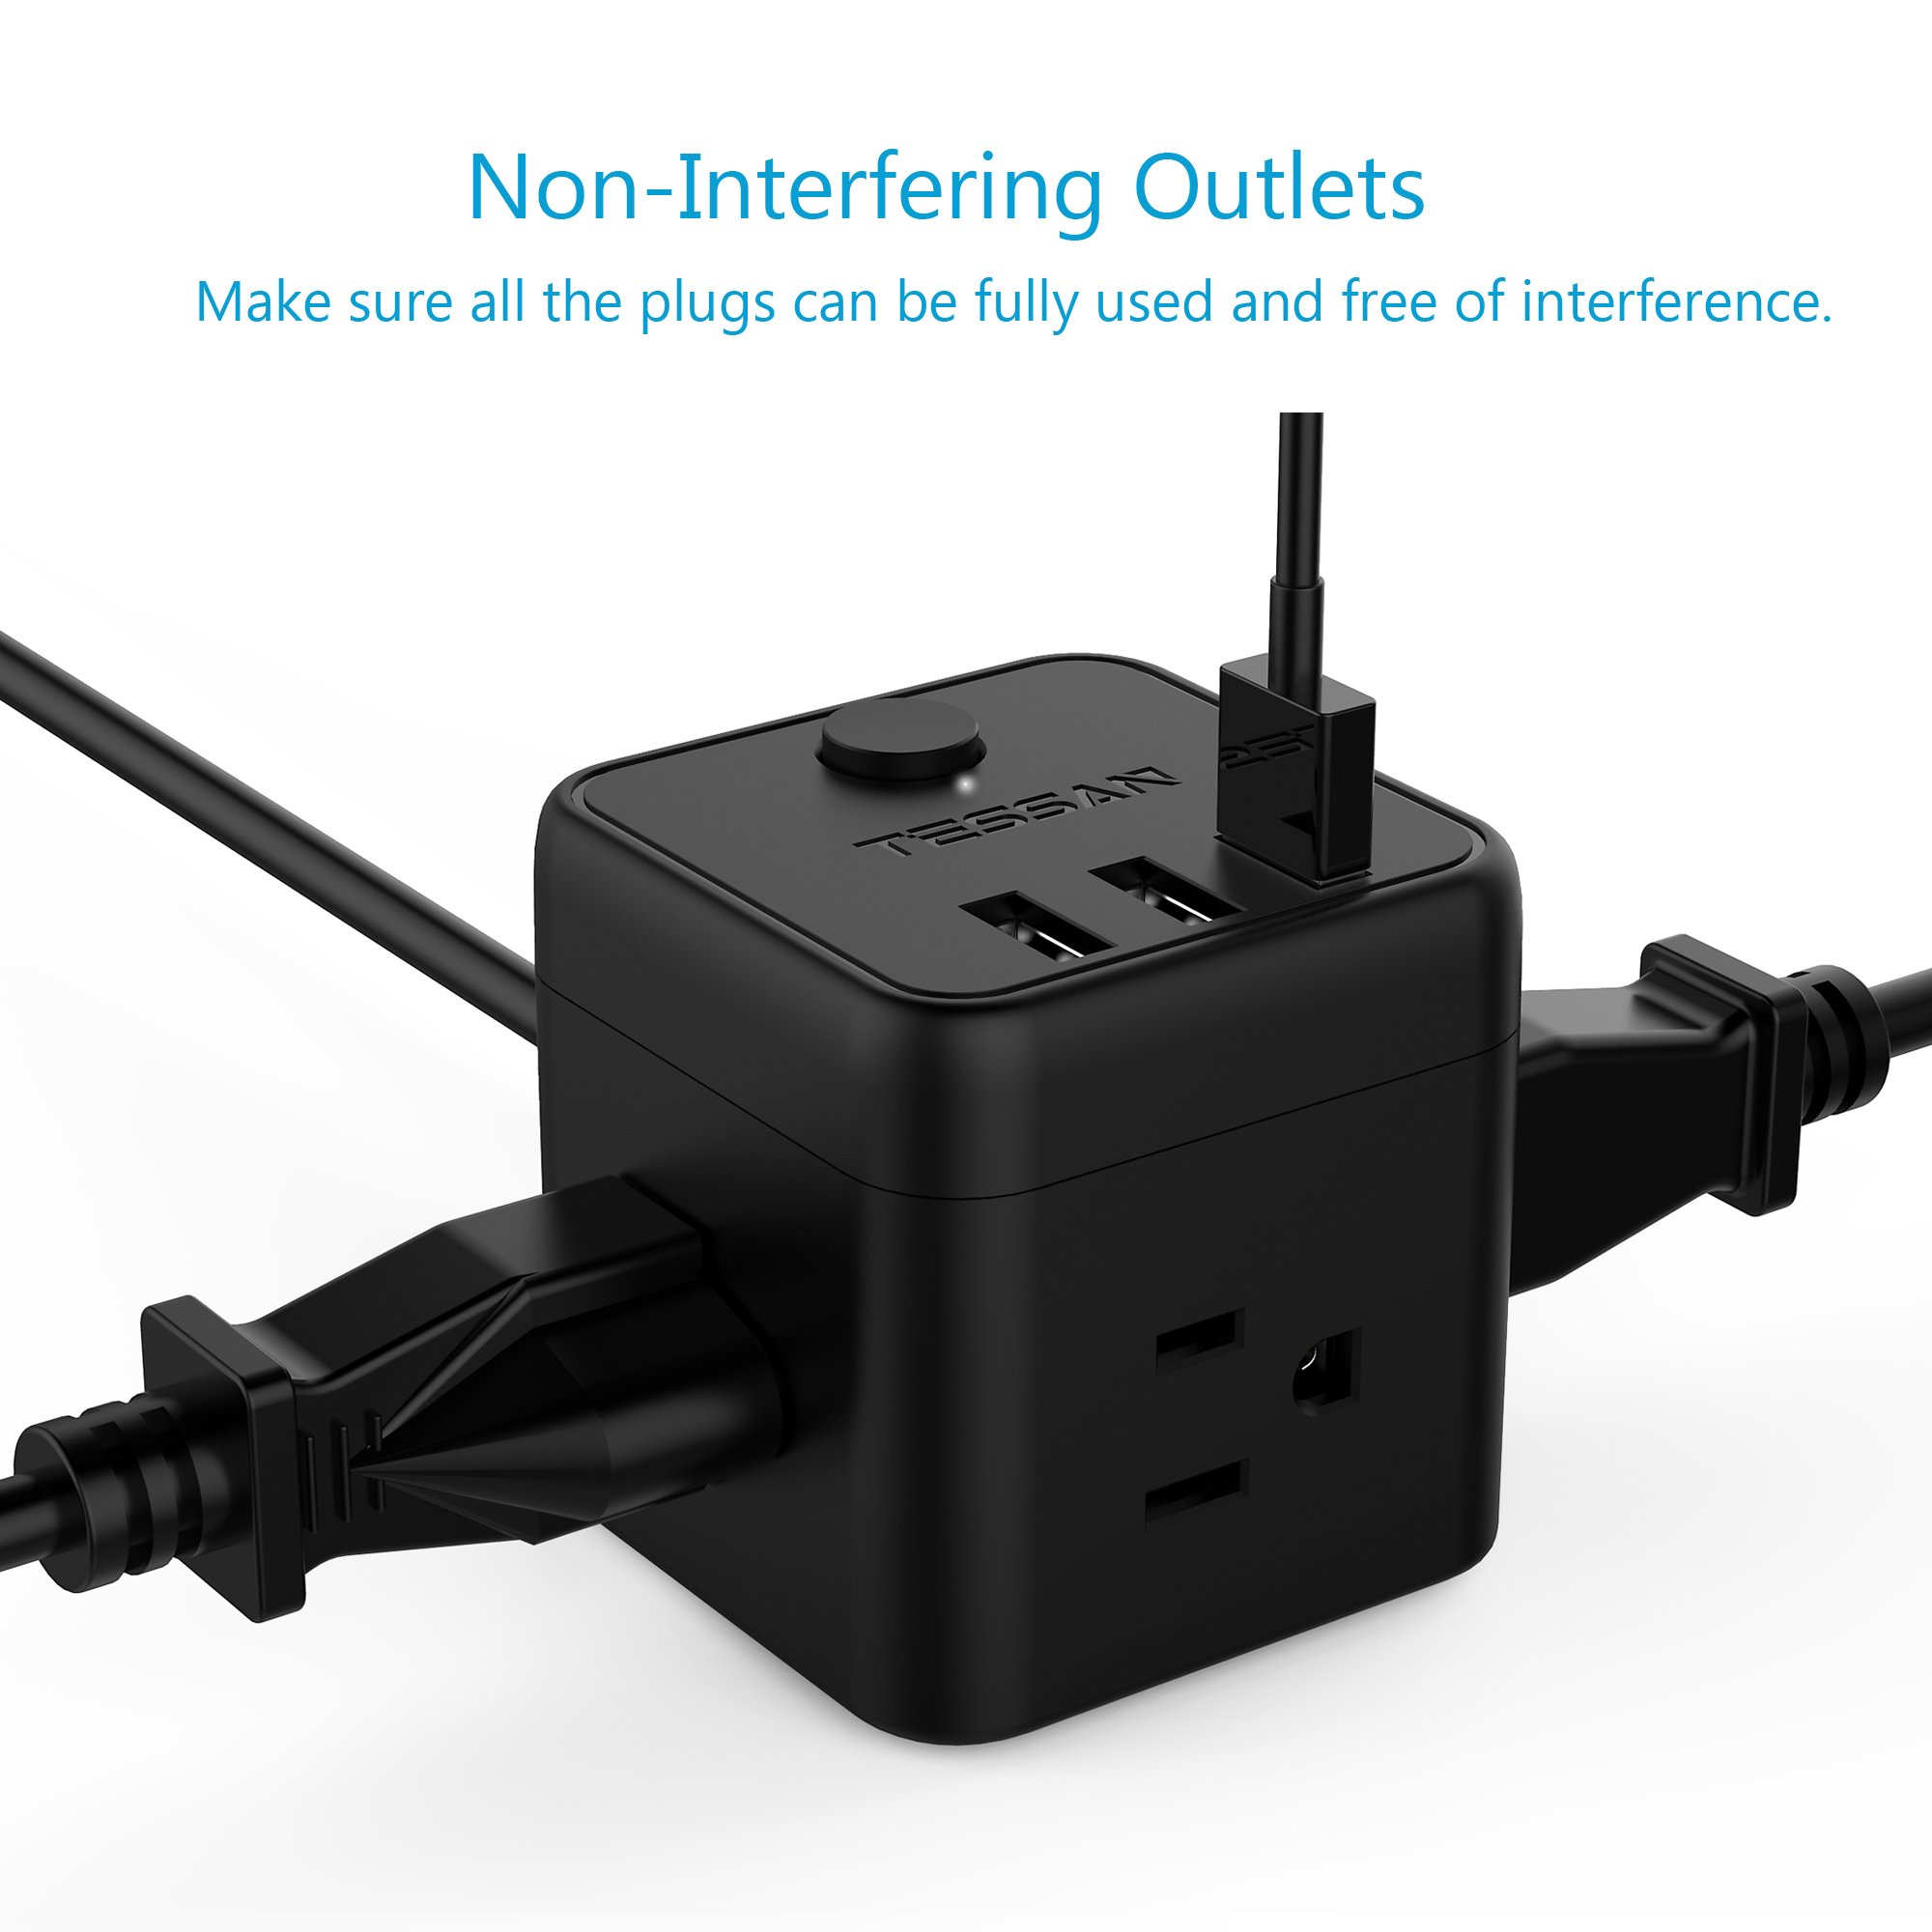 Portable Cube Power Strip with 3 USB Port & Switch Control, 3 Outlet Charging Station with 5 Ft Extension Cord for Nightstand & Desktop & Travel - Black by TESSAN (Image #2)